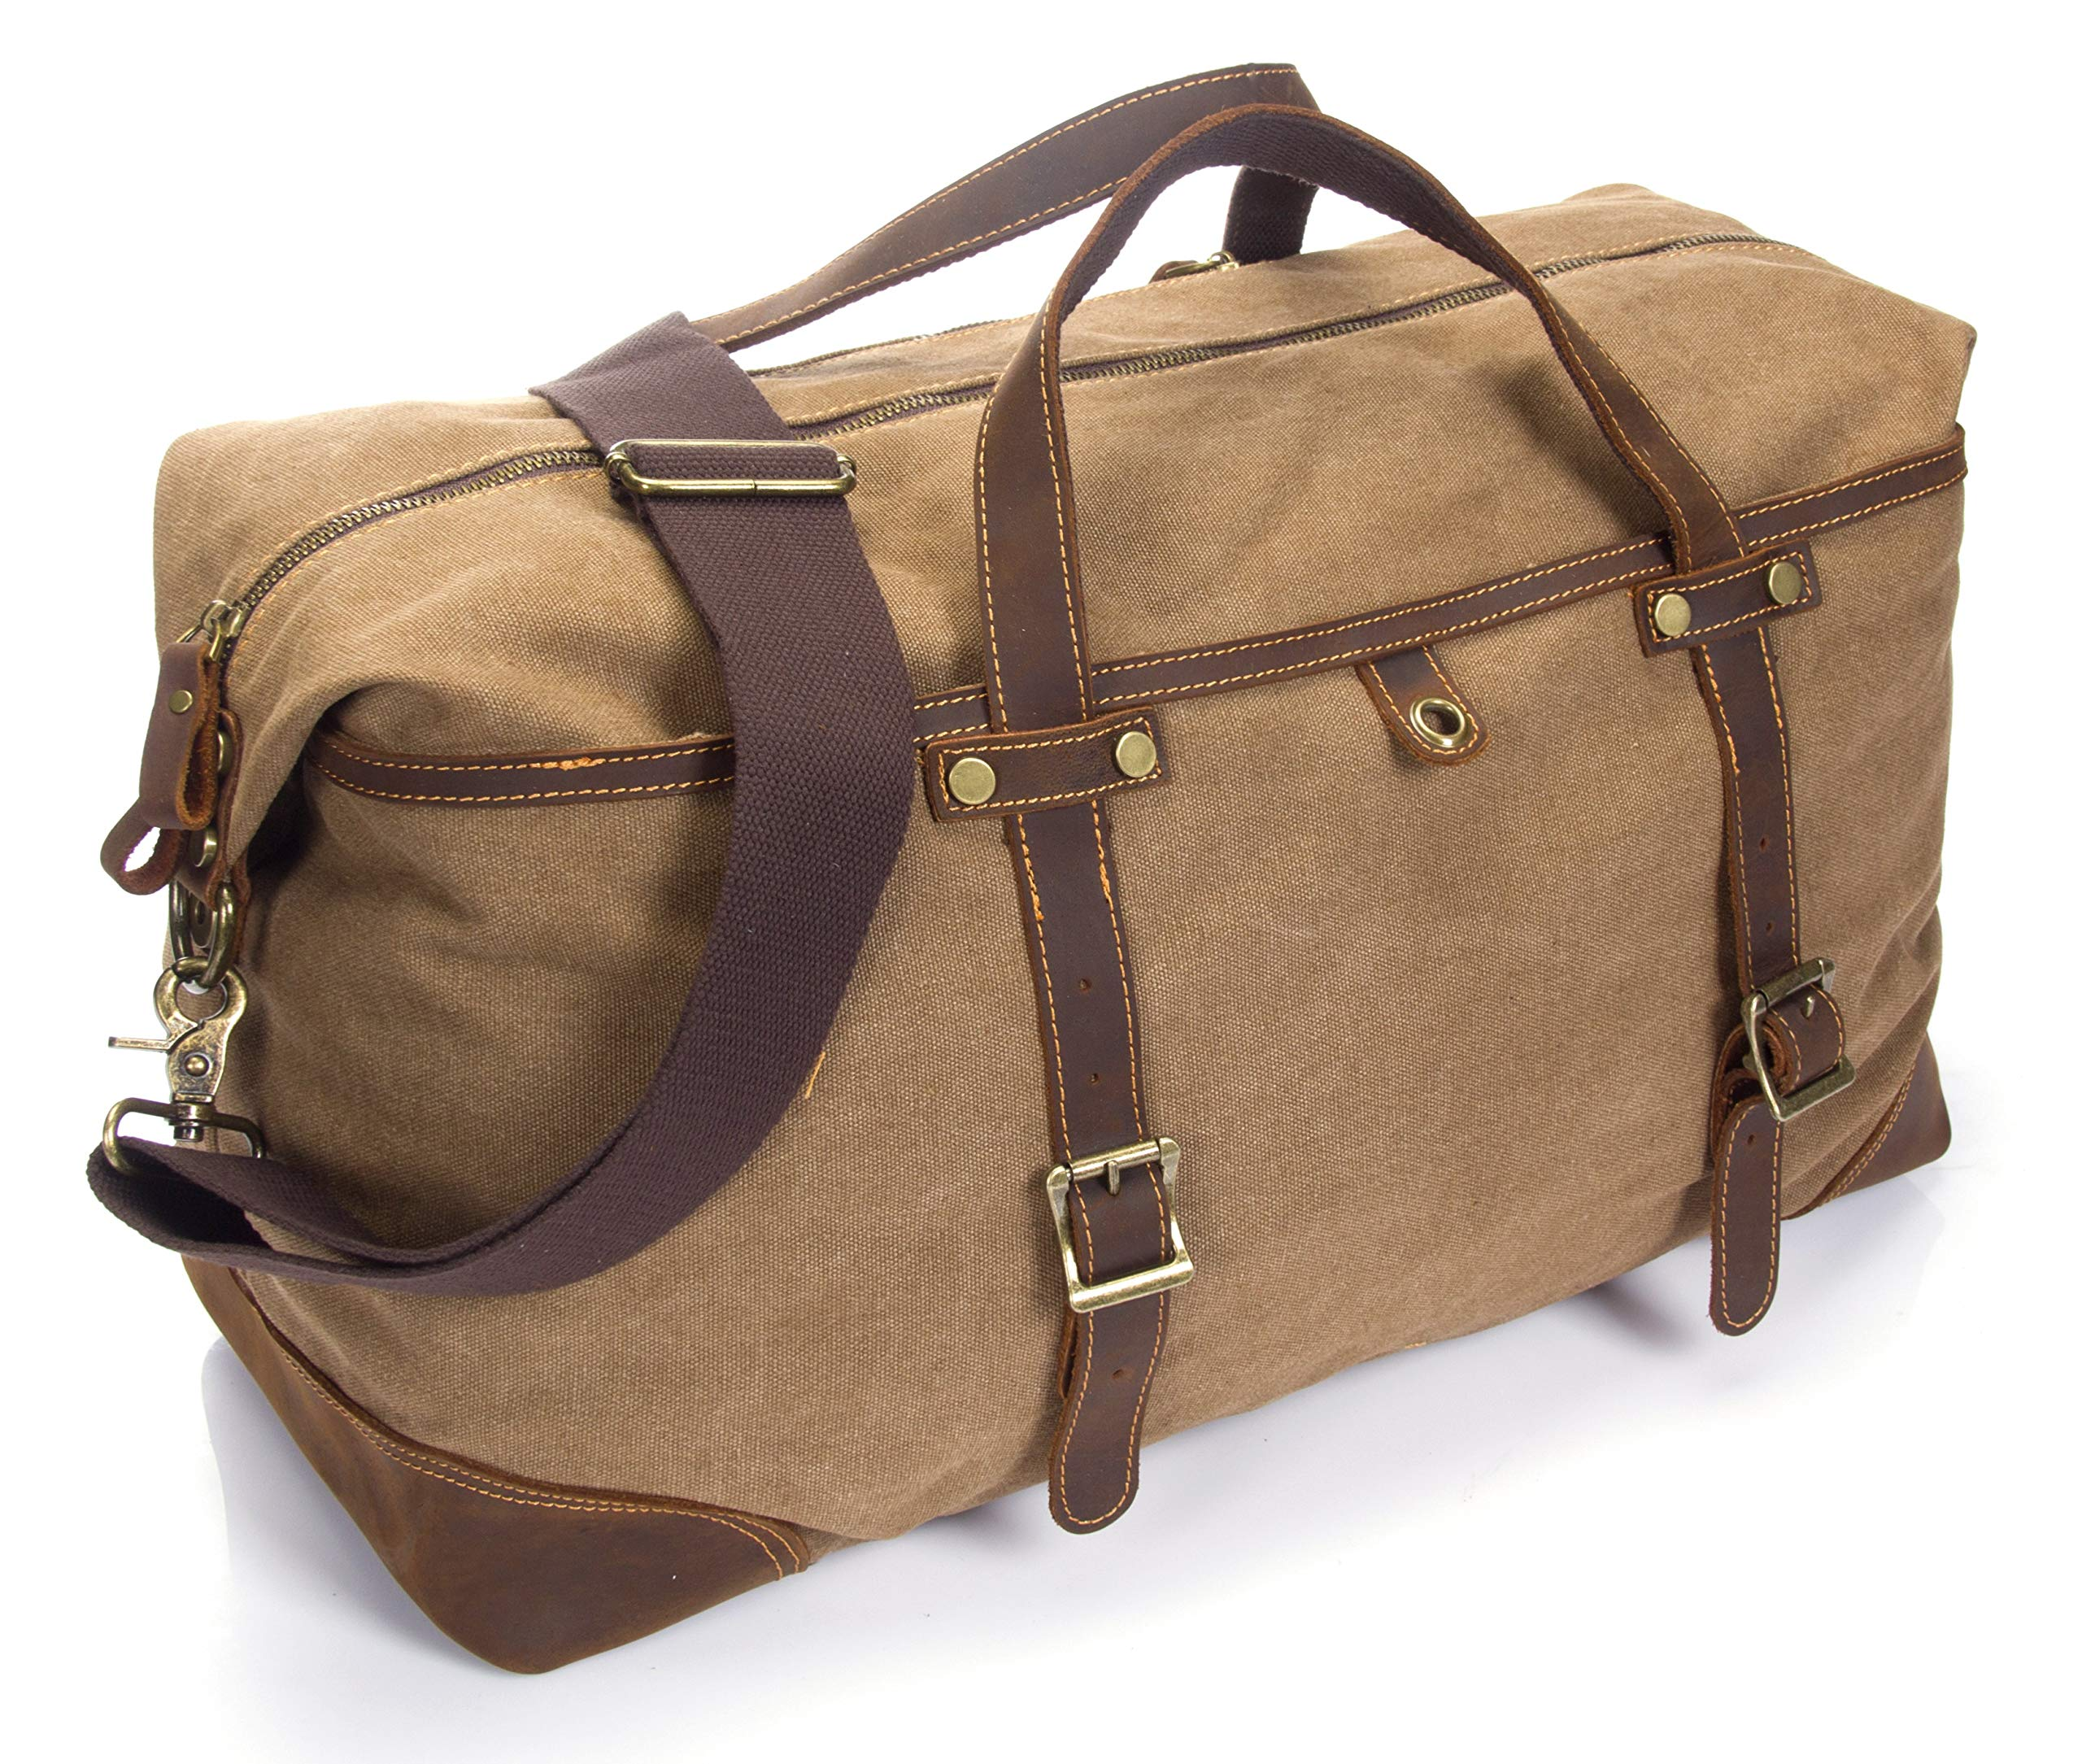 emissary Duffel Bag for Men | Mens Carry On Duffel Bag | Canvas and Leather Overnight Bag | Large Canvas Duffel Bag Men (Brown Weekender Bag) by emissary